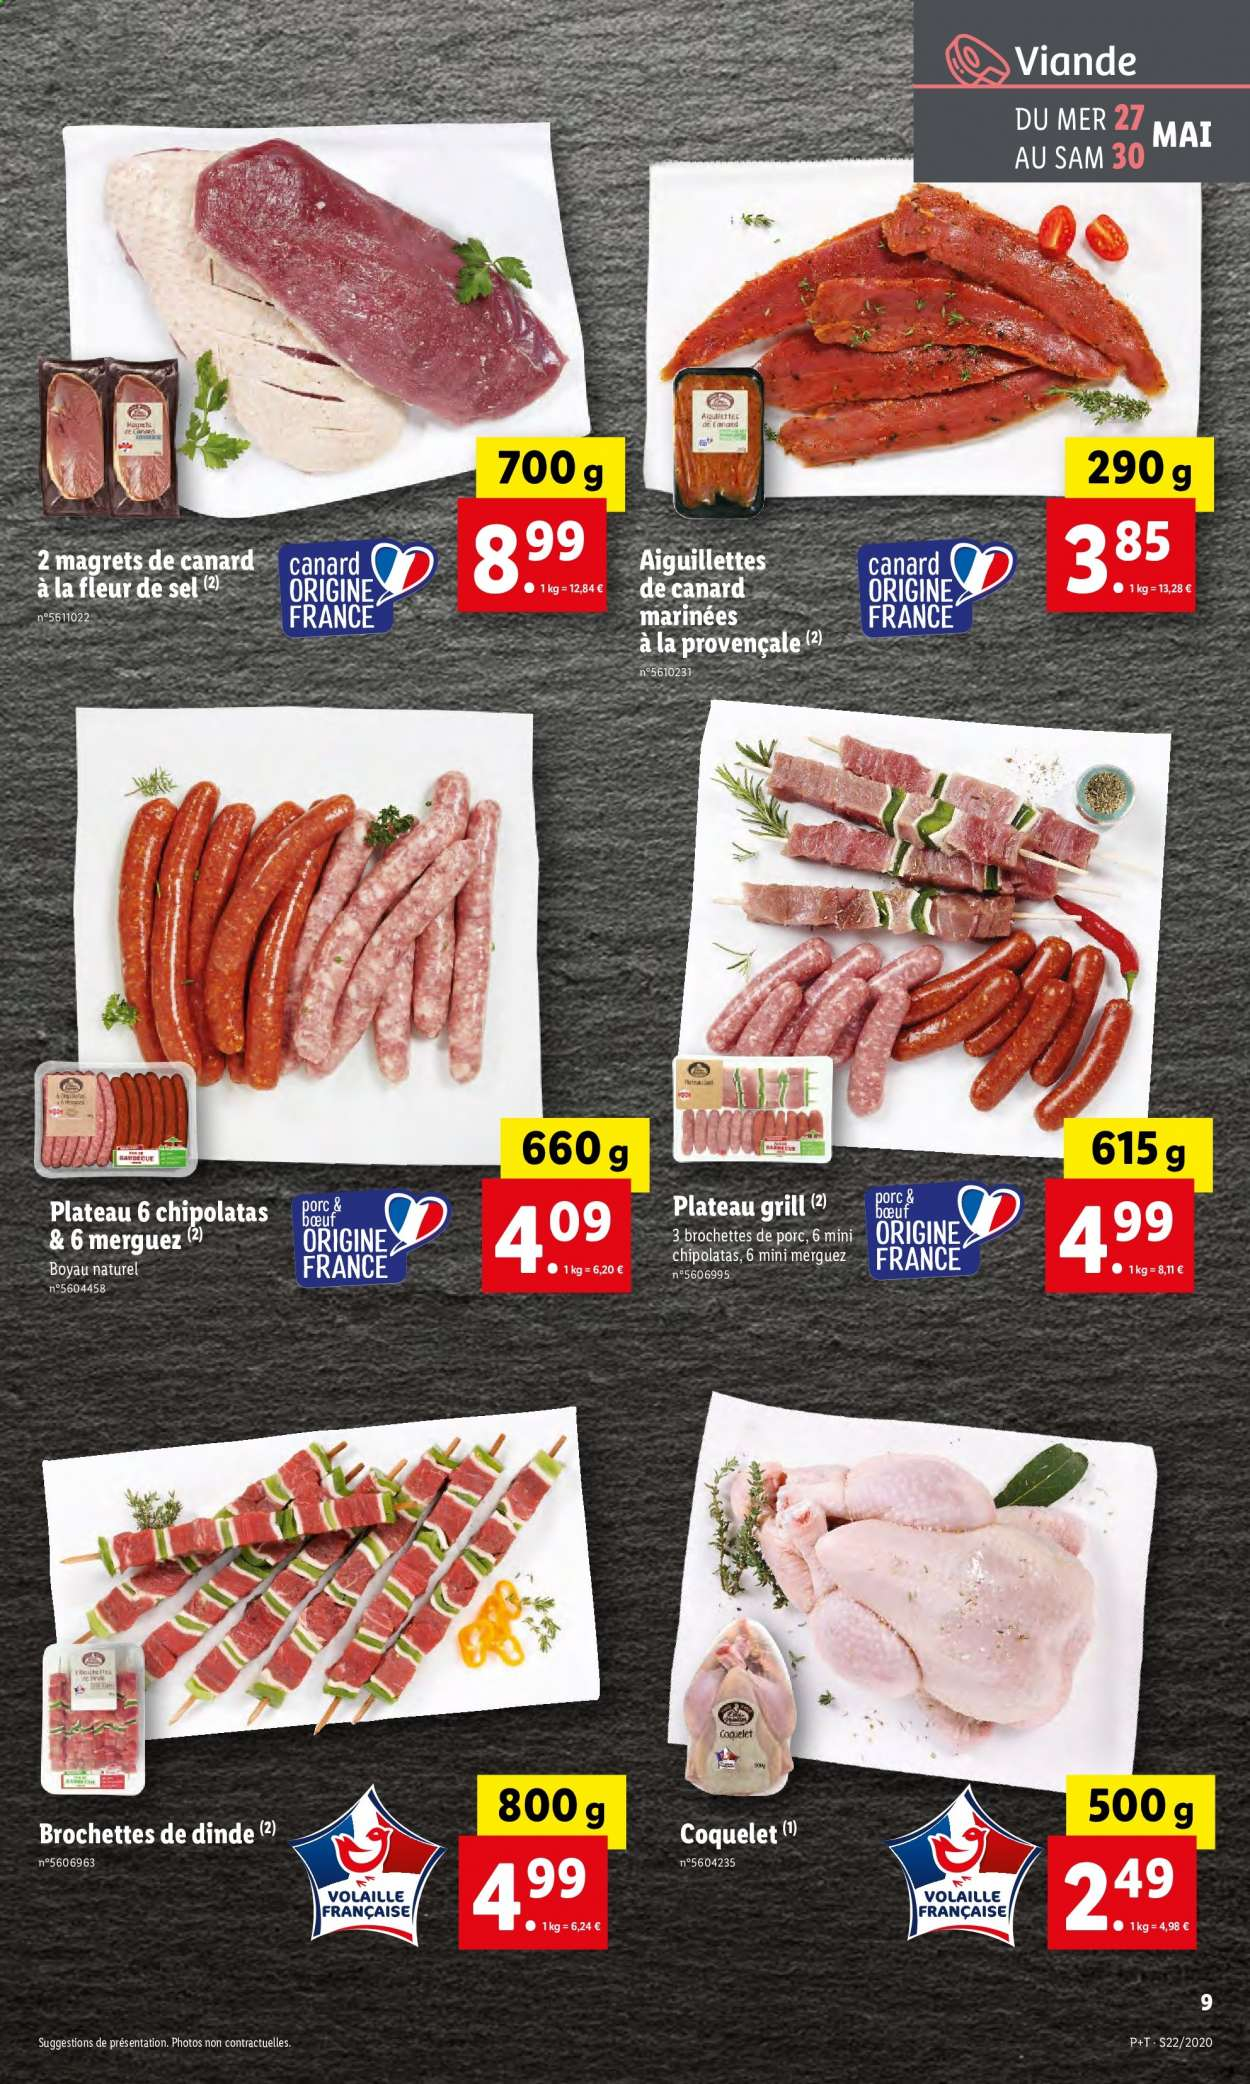 Catalogue Lidl - 27.05.2020 - 02.06.2020. Page 9.